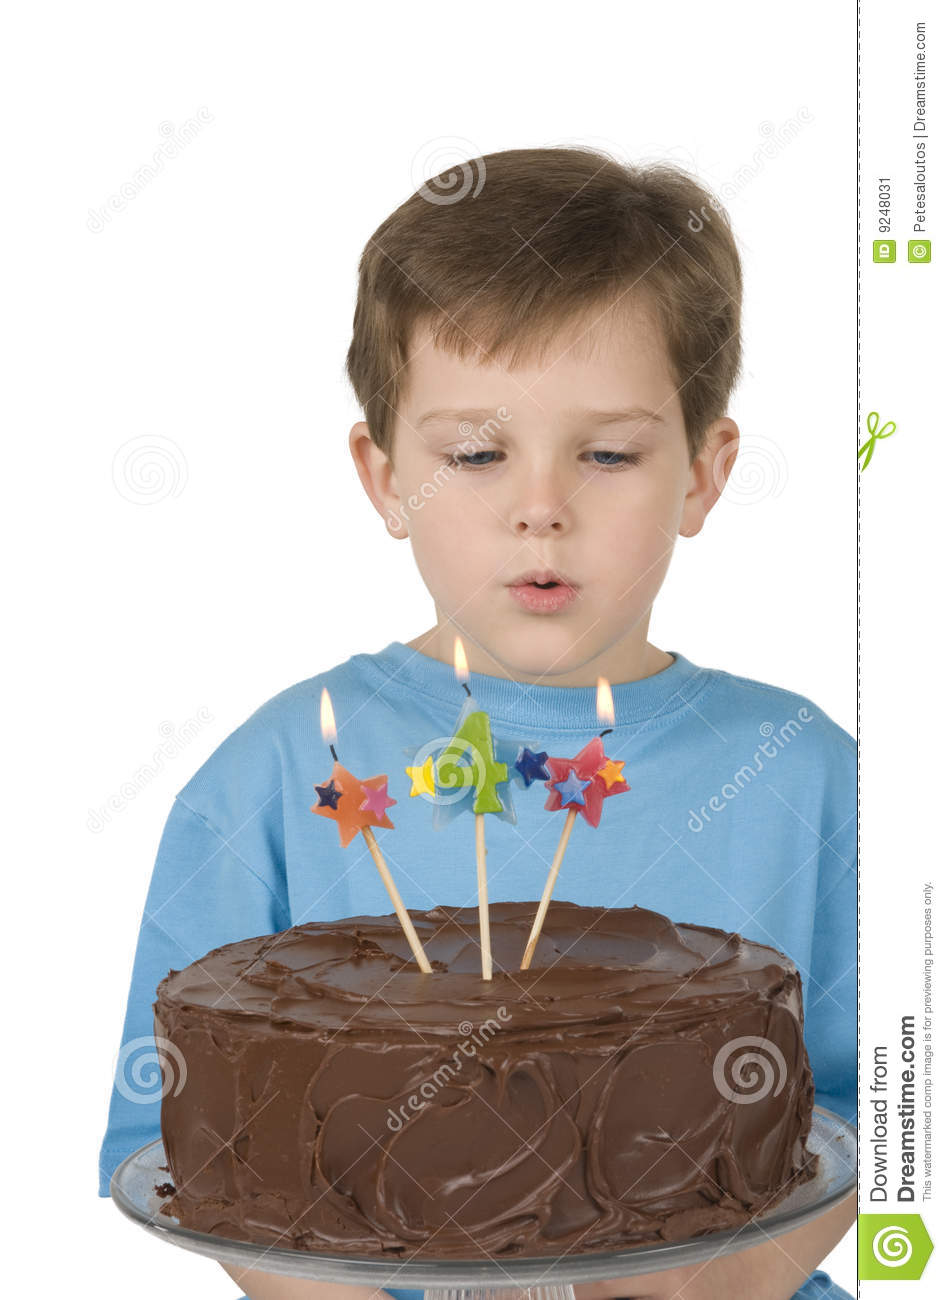 Boy With Birthday Cake Stock Image Image Of Icing Baked